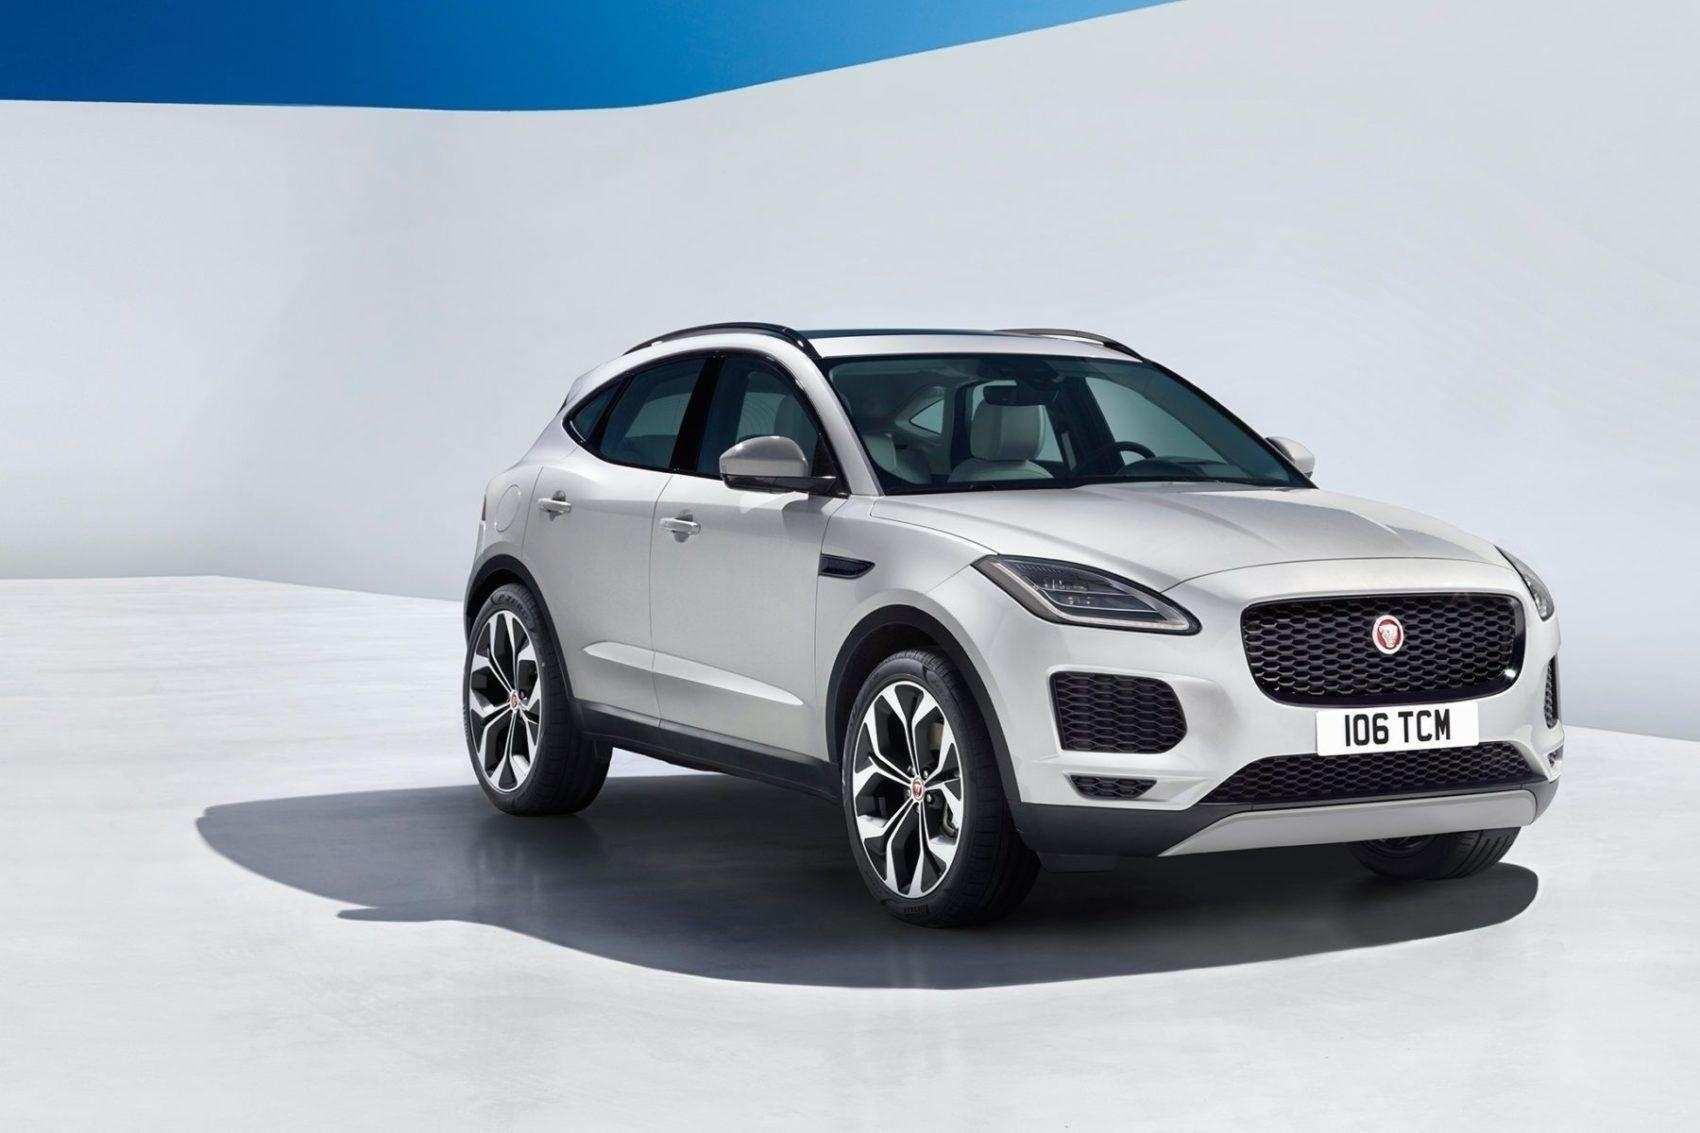 45 Great 2019 Jaguar Xq Crossover Release Date by 2019 Jaguar Xq Crossover